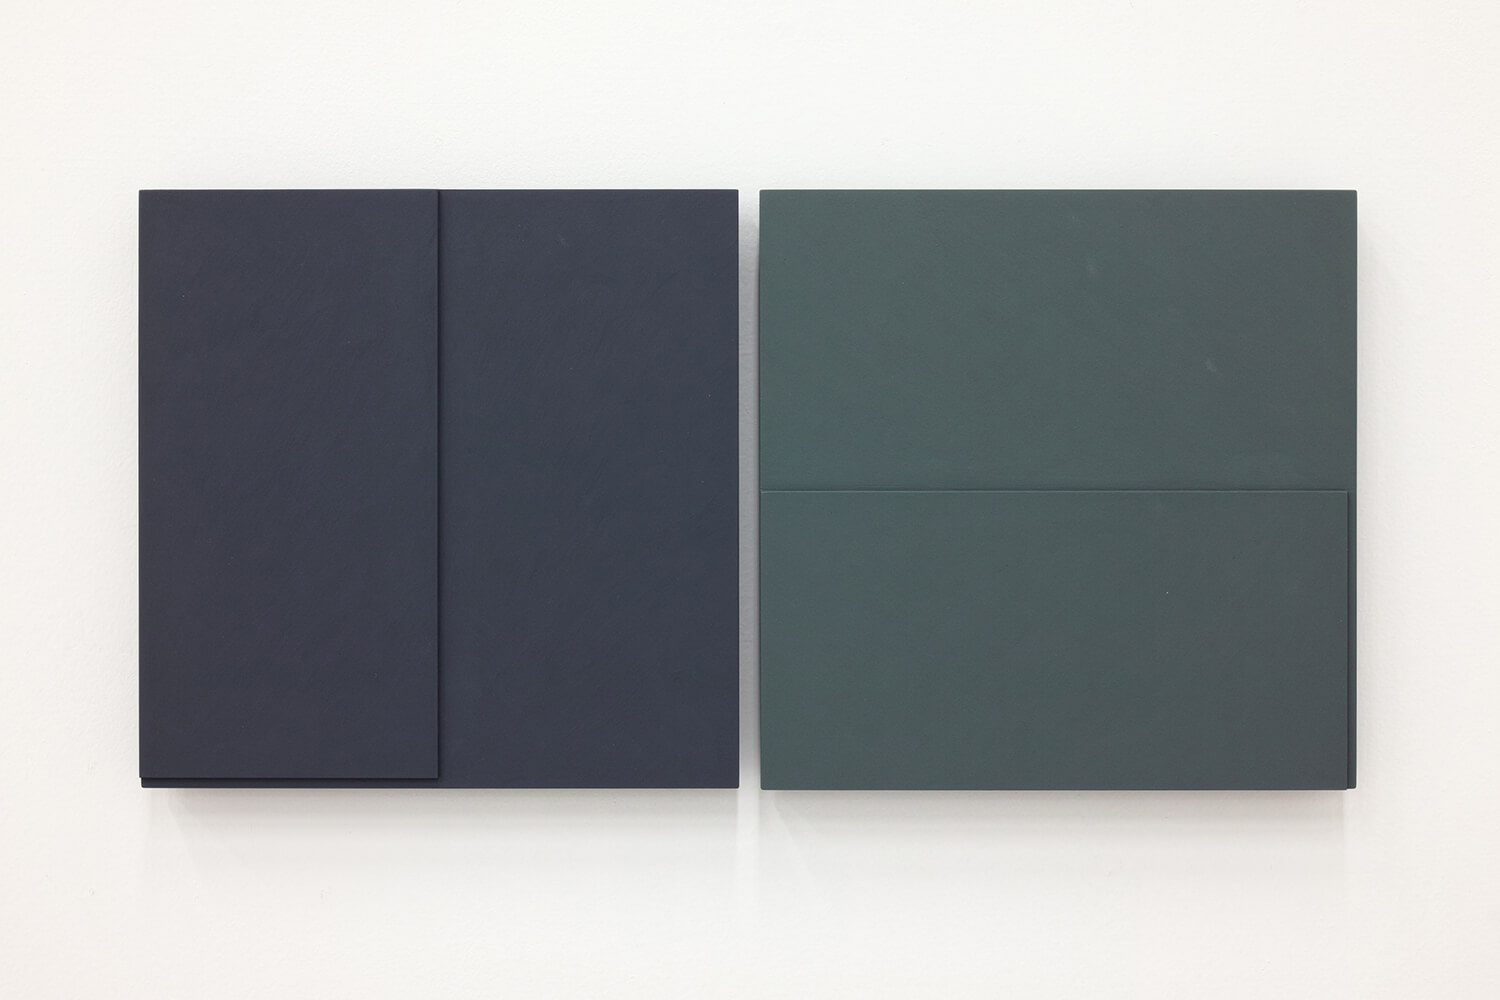 TS1721<br>Colour Gesso on Panel, a set of 2 pieces, 25x25cm each, 2017